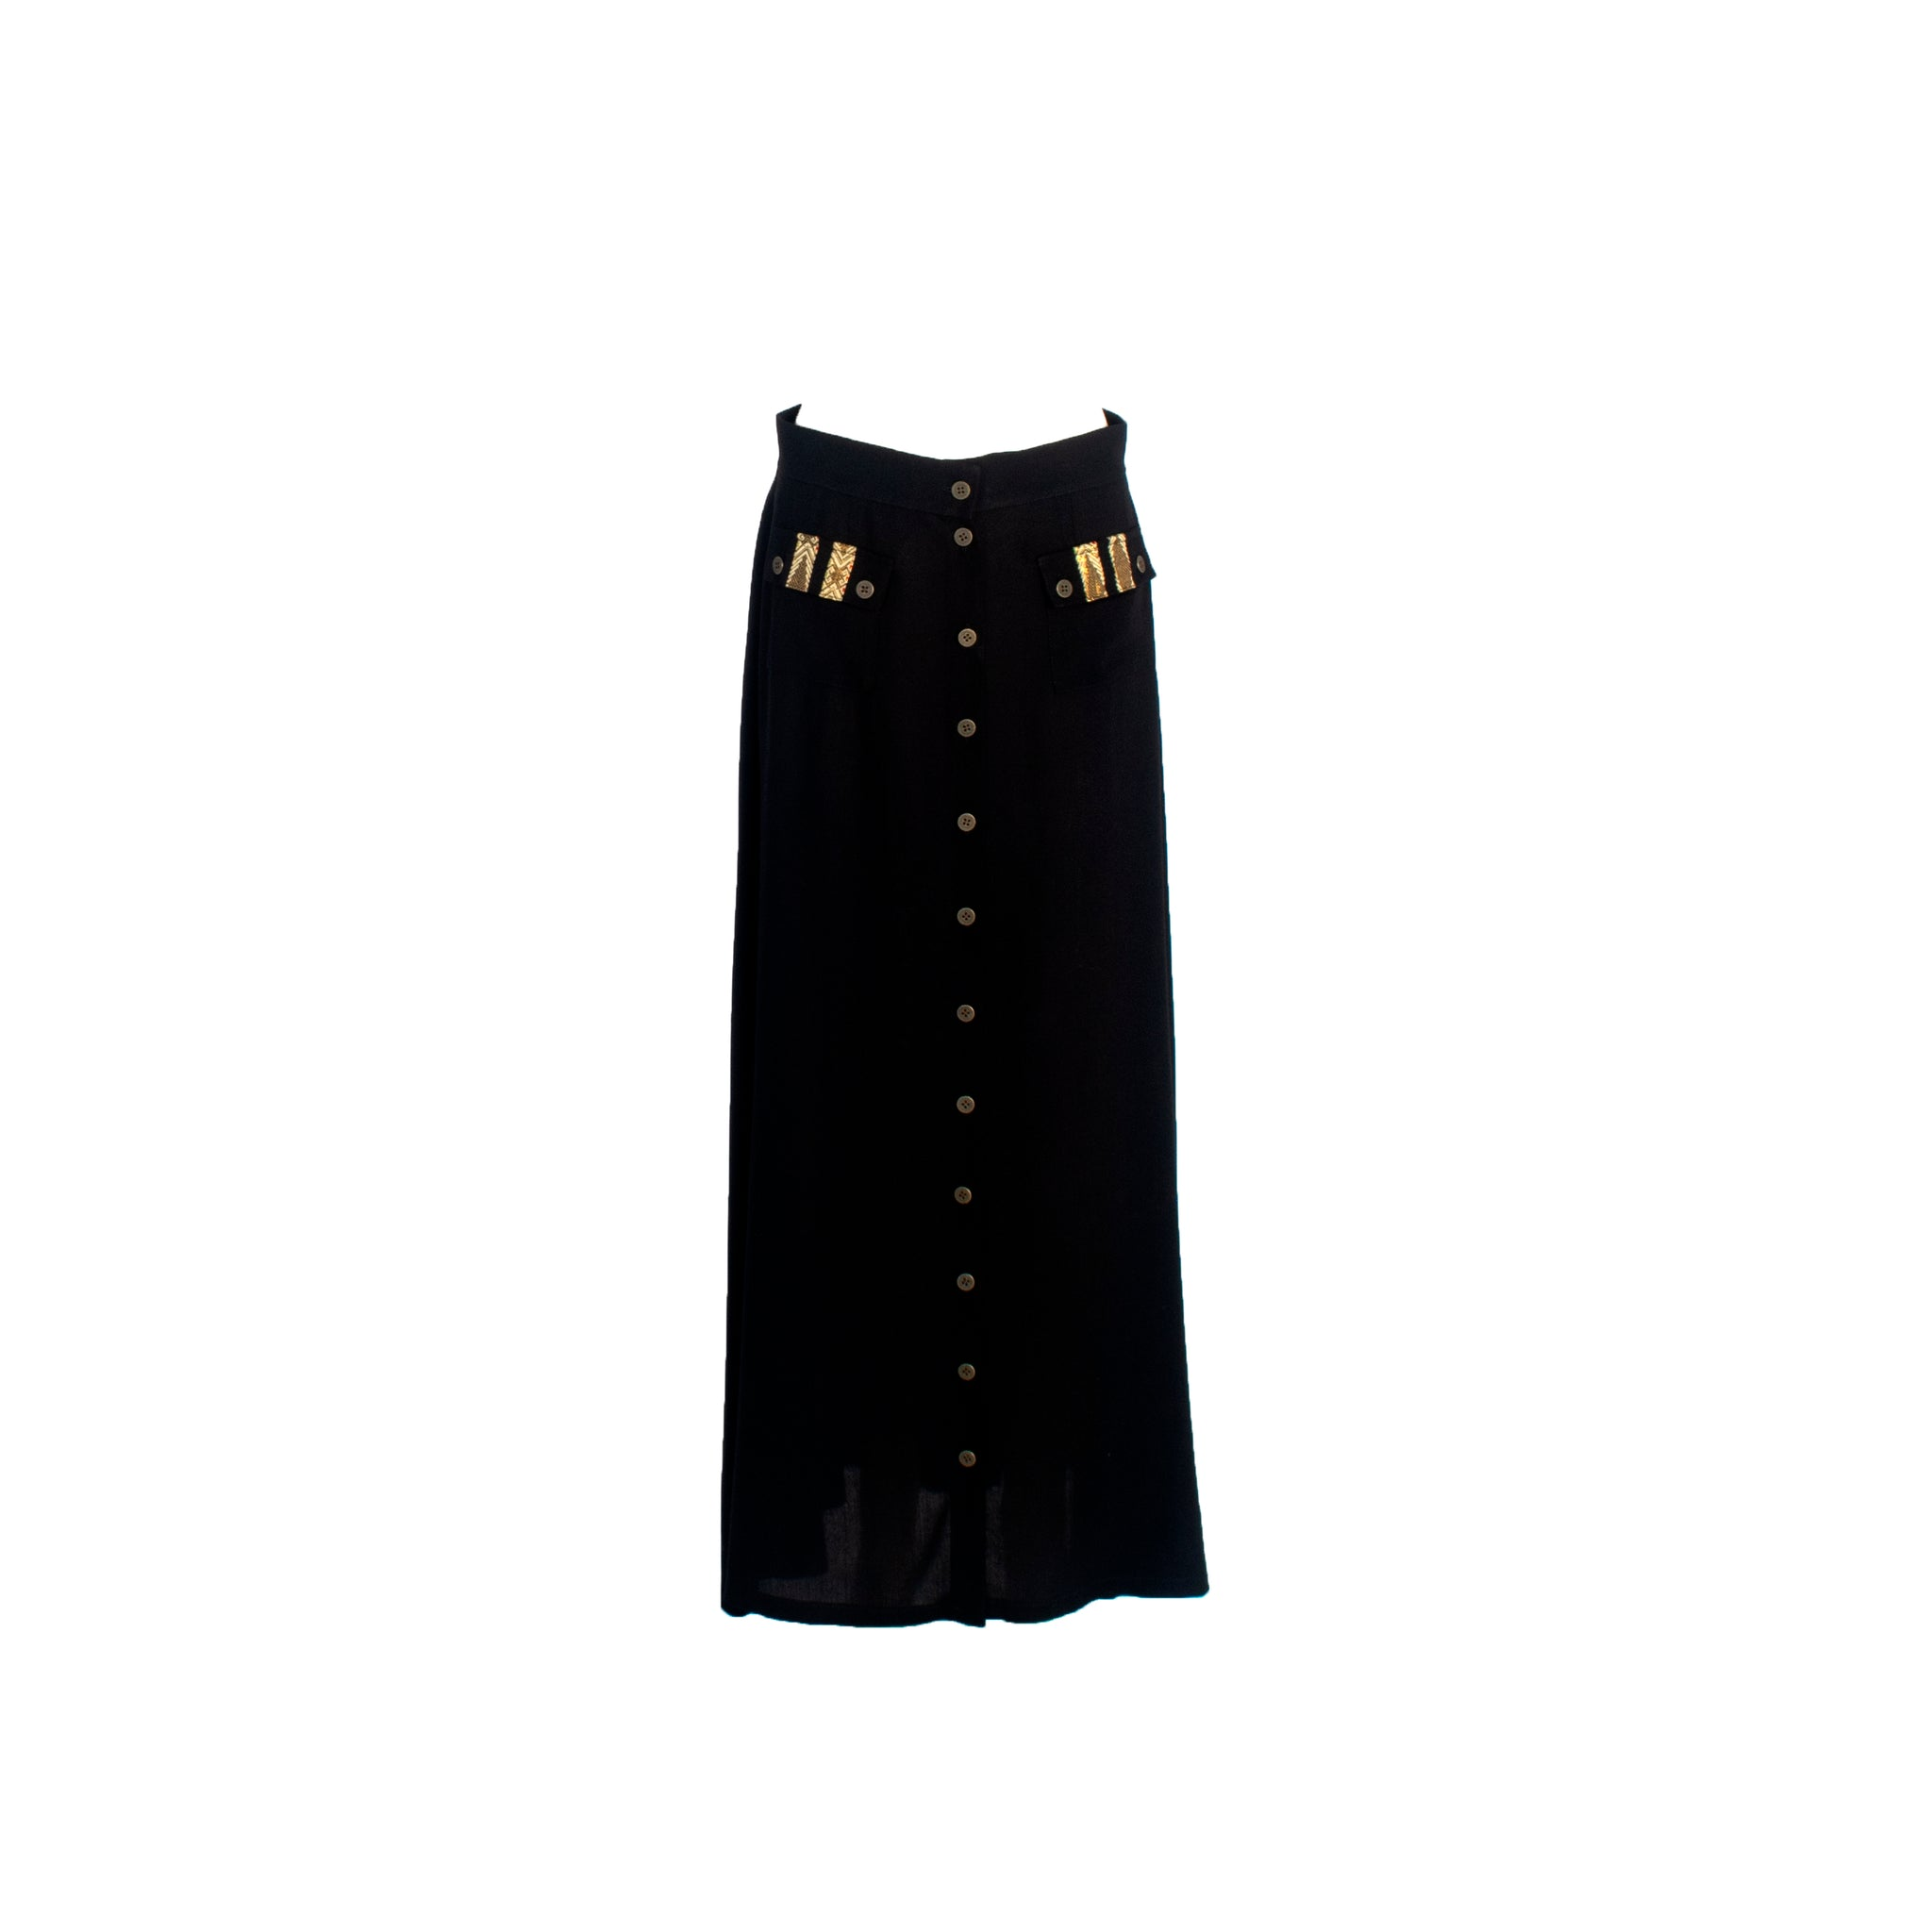 A-Line Wool Button Maxi Skirt with Front Pockets Black